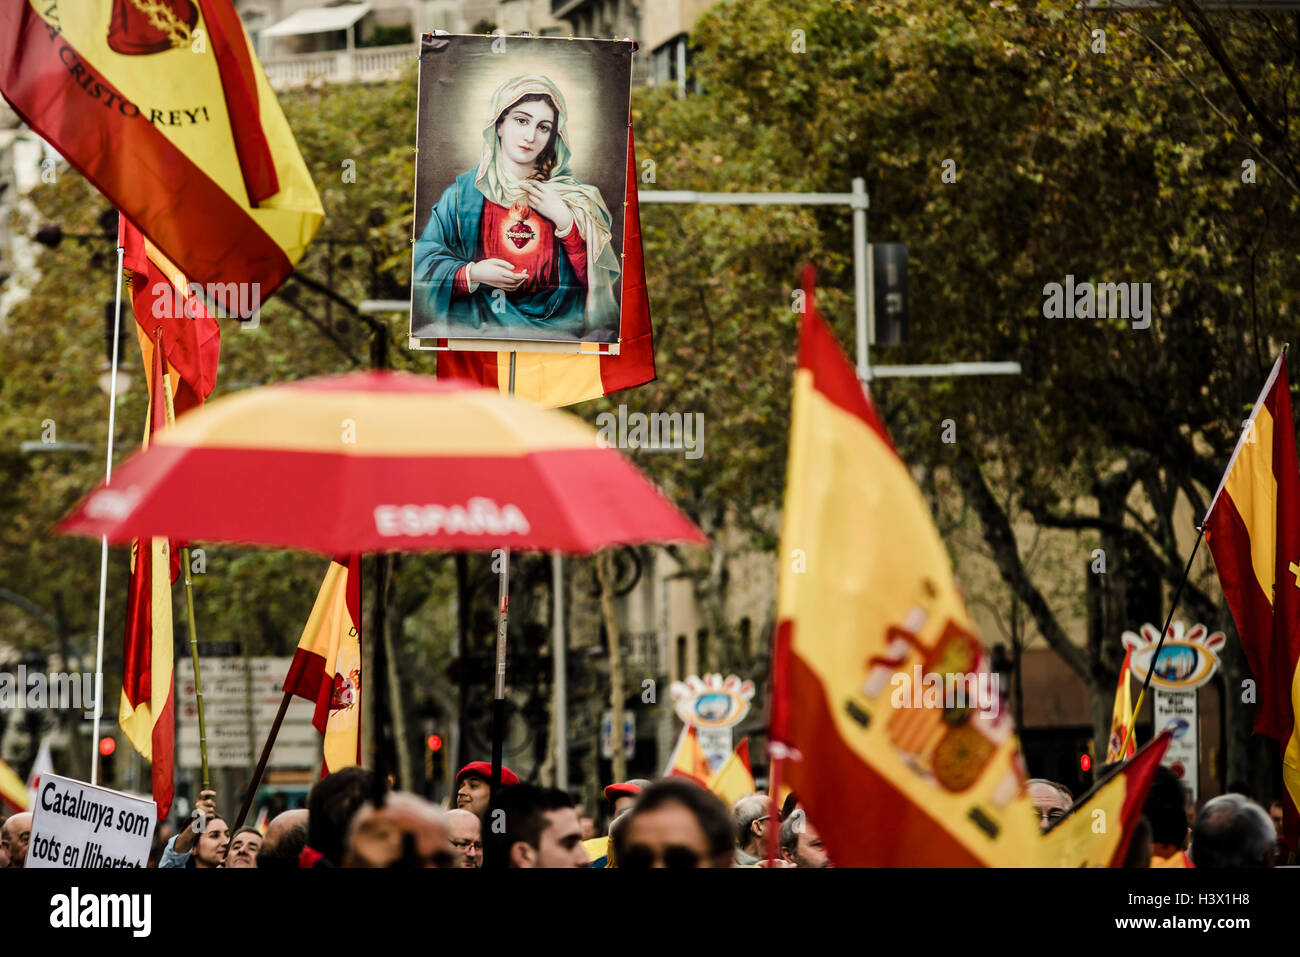 Barcelona, Spain. 12th October, 2016:  Anti-separatist Catalans march with waving flags through the city of Barcelona - Stock Image